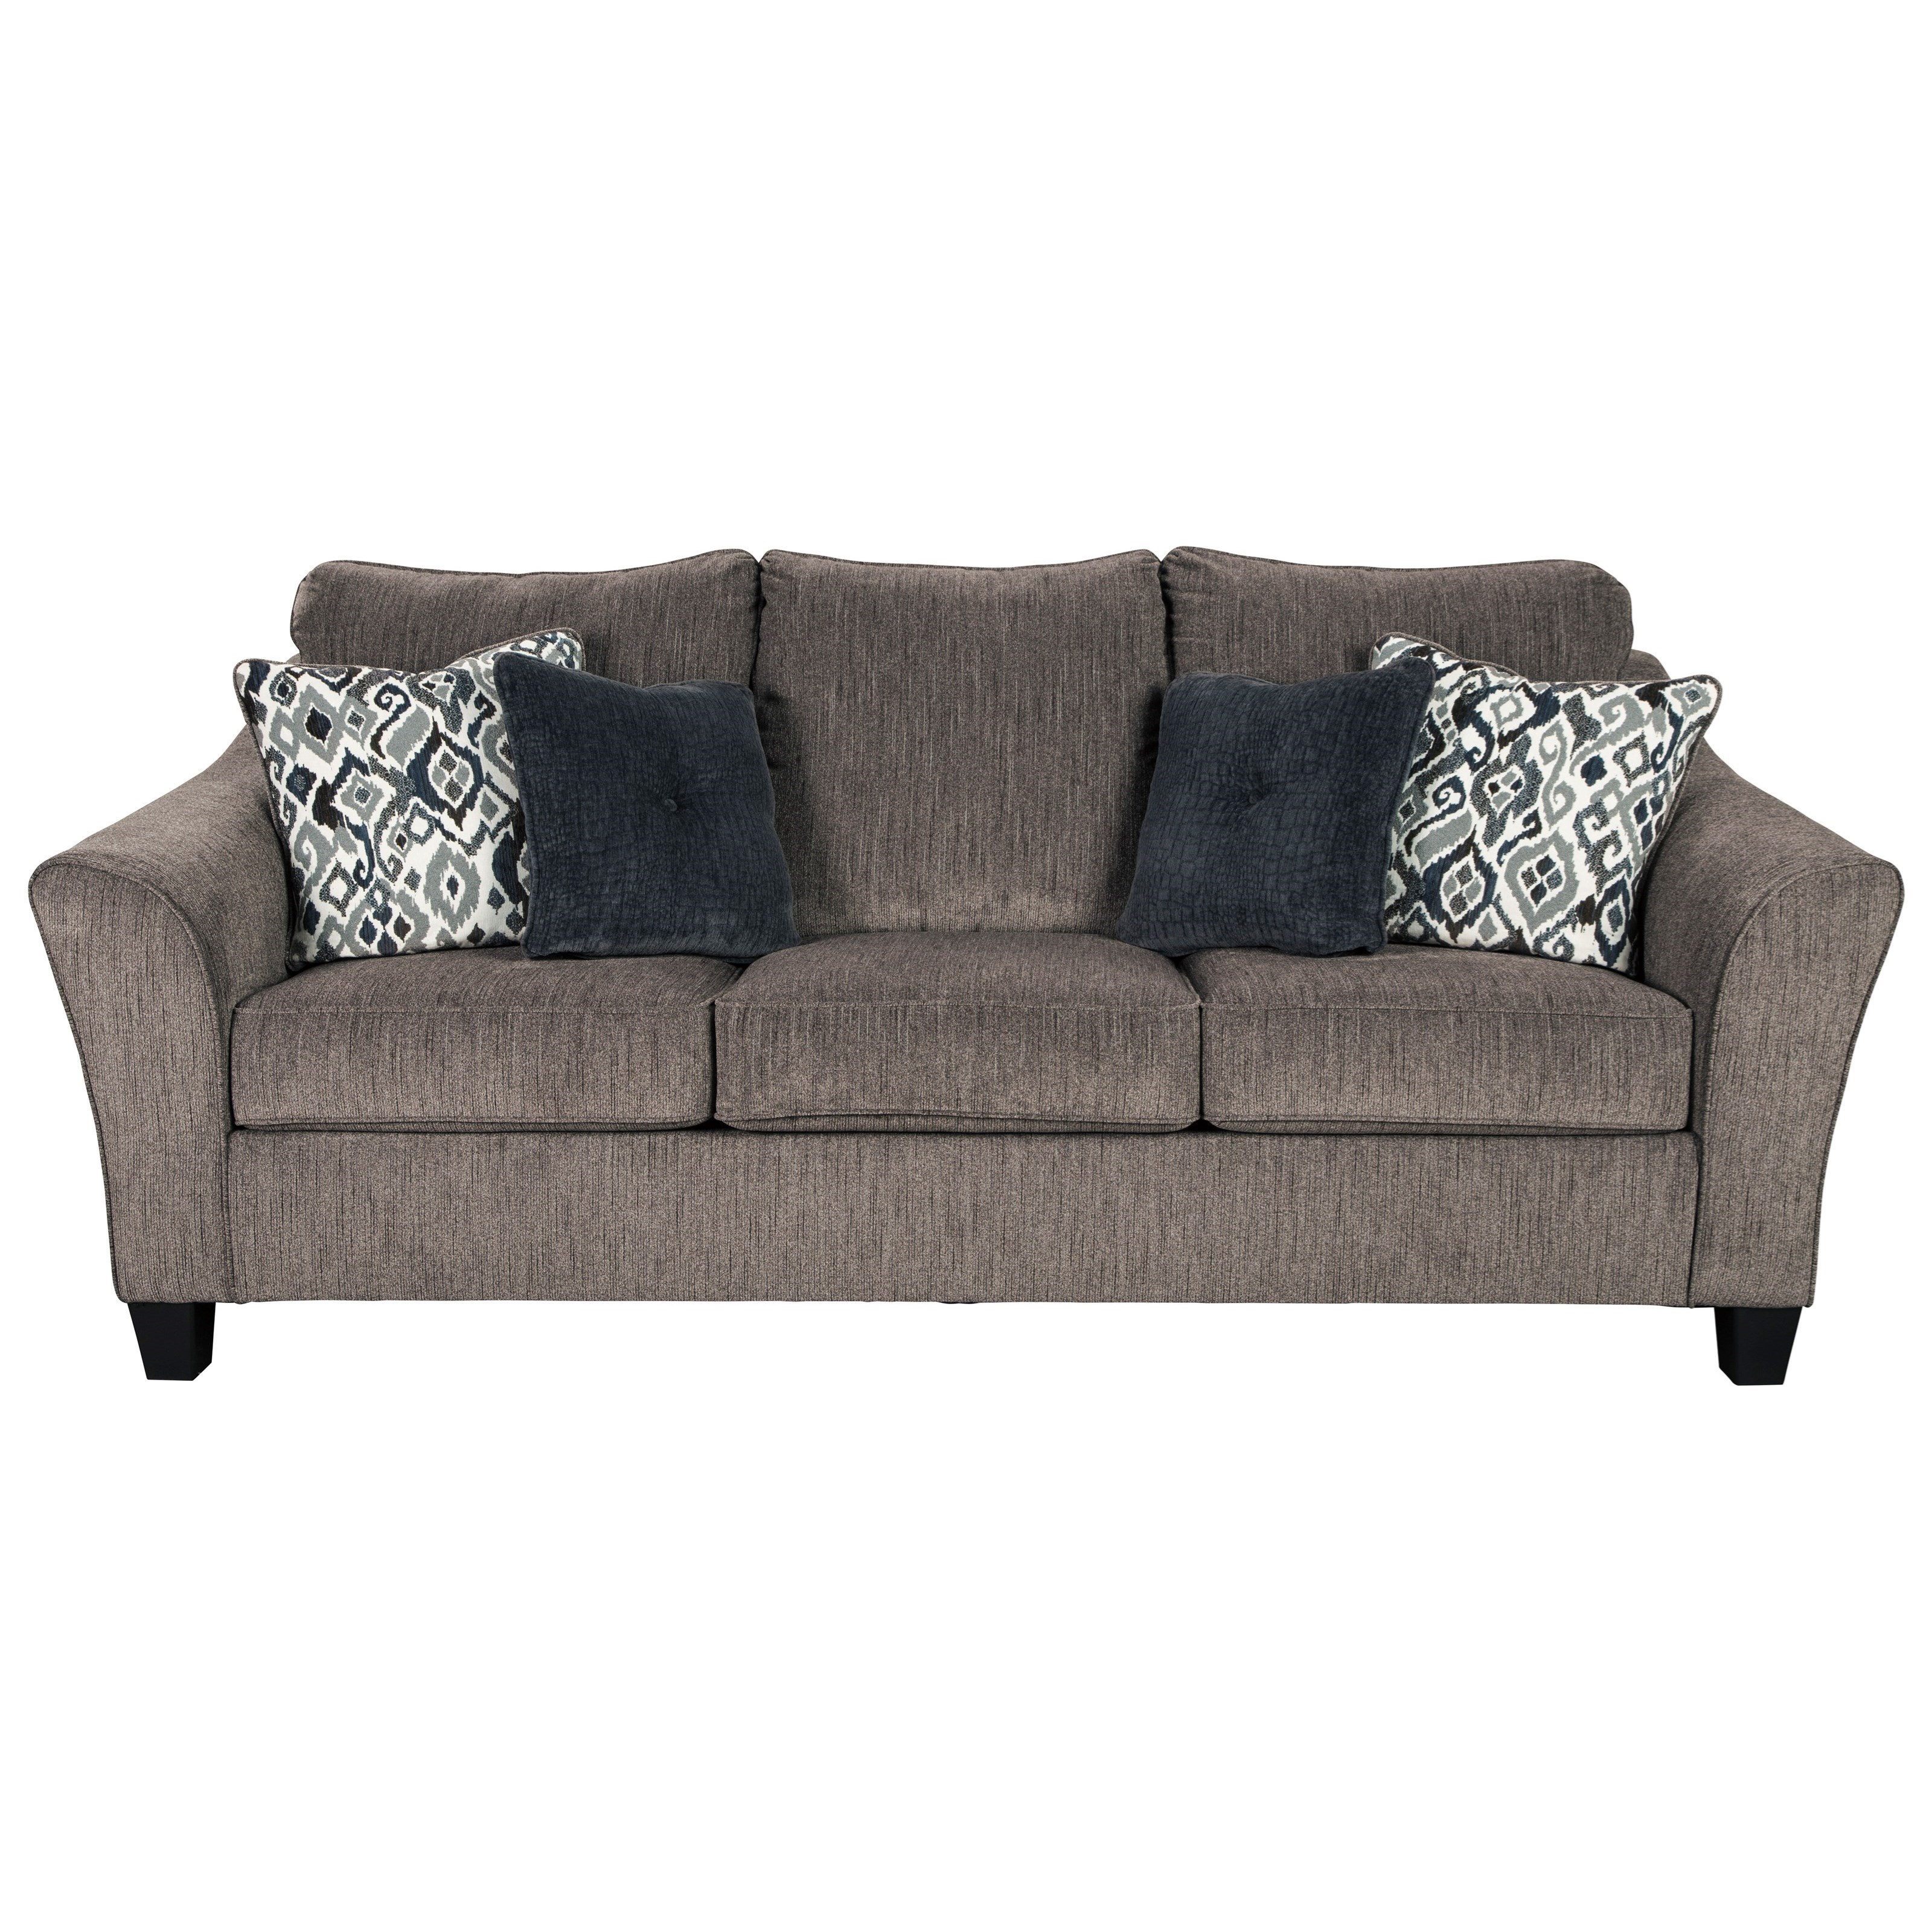 Nemoli Sofa by Signature Design by Ashley at Lapeer Furniture & Mattress Center